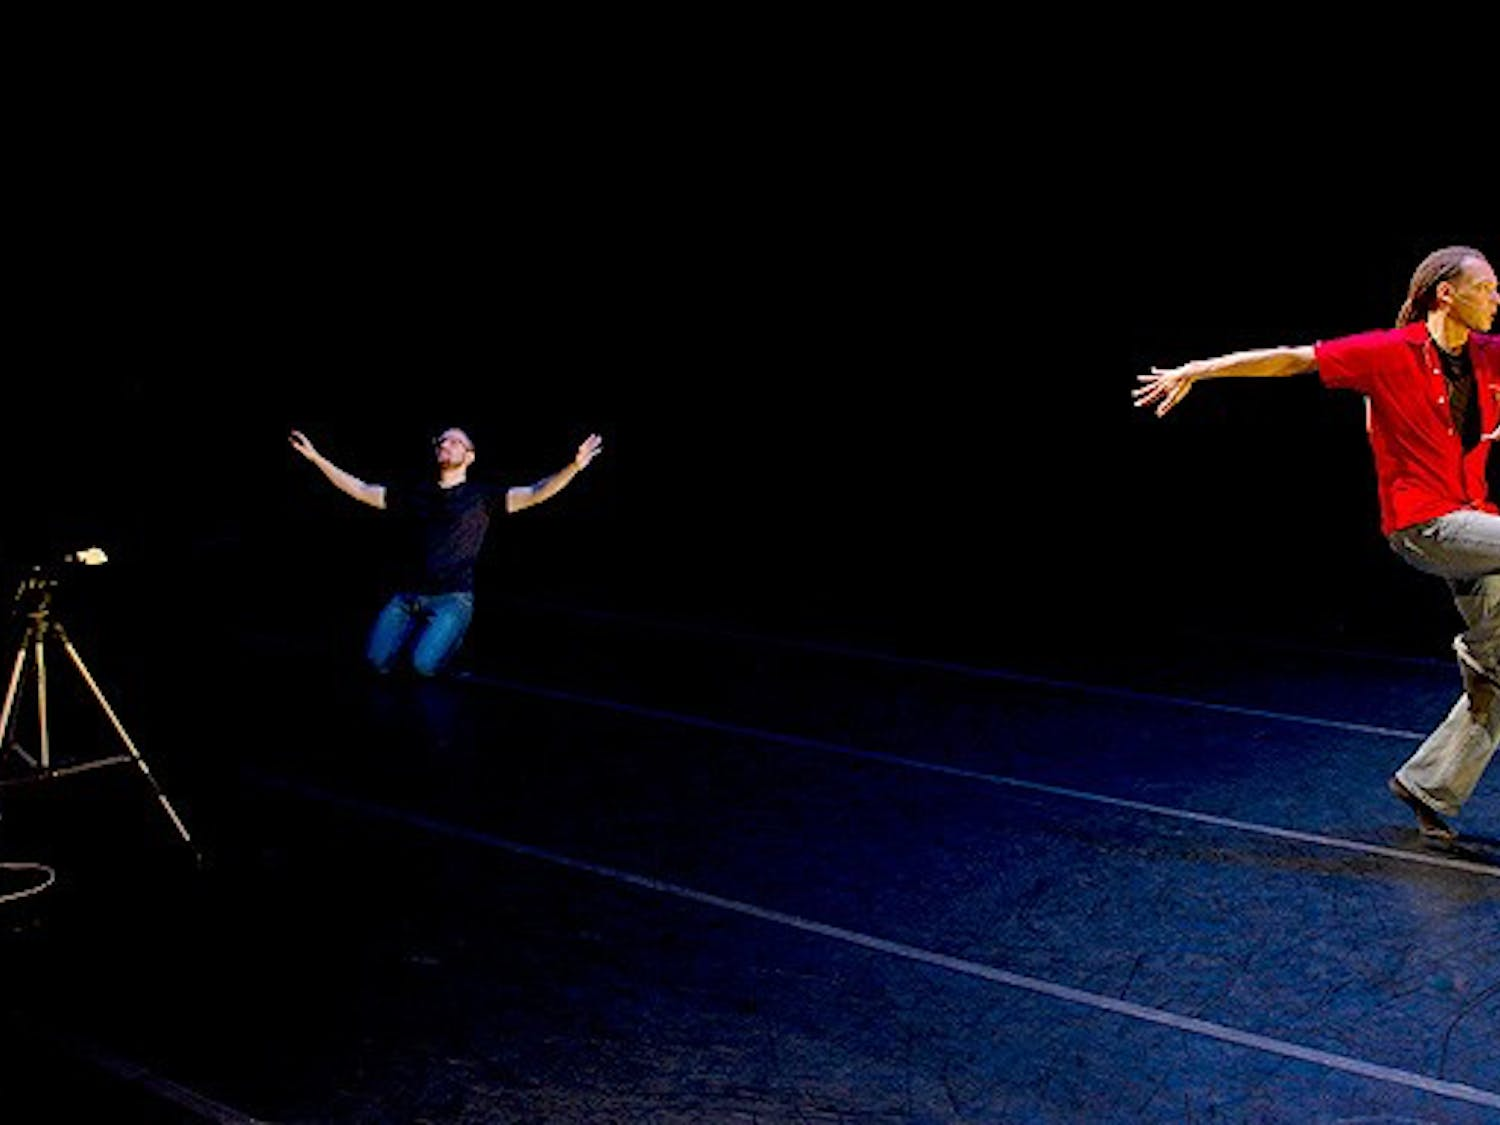 Kenneth Stewart uses an Xbox Kinect to narrate a dance by Thomas DeFrantz on an Xbox Kinect.